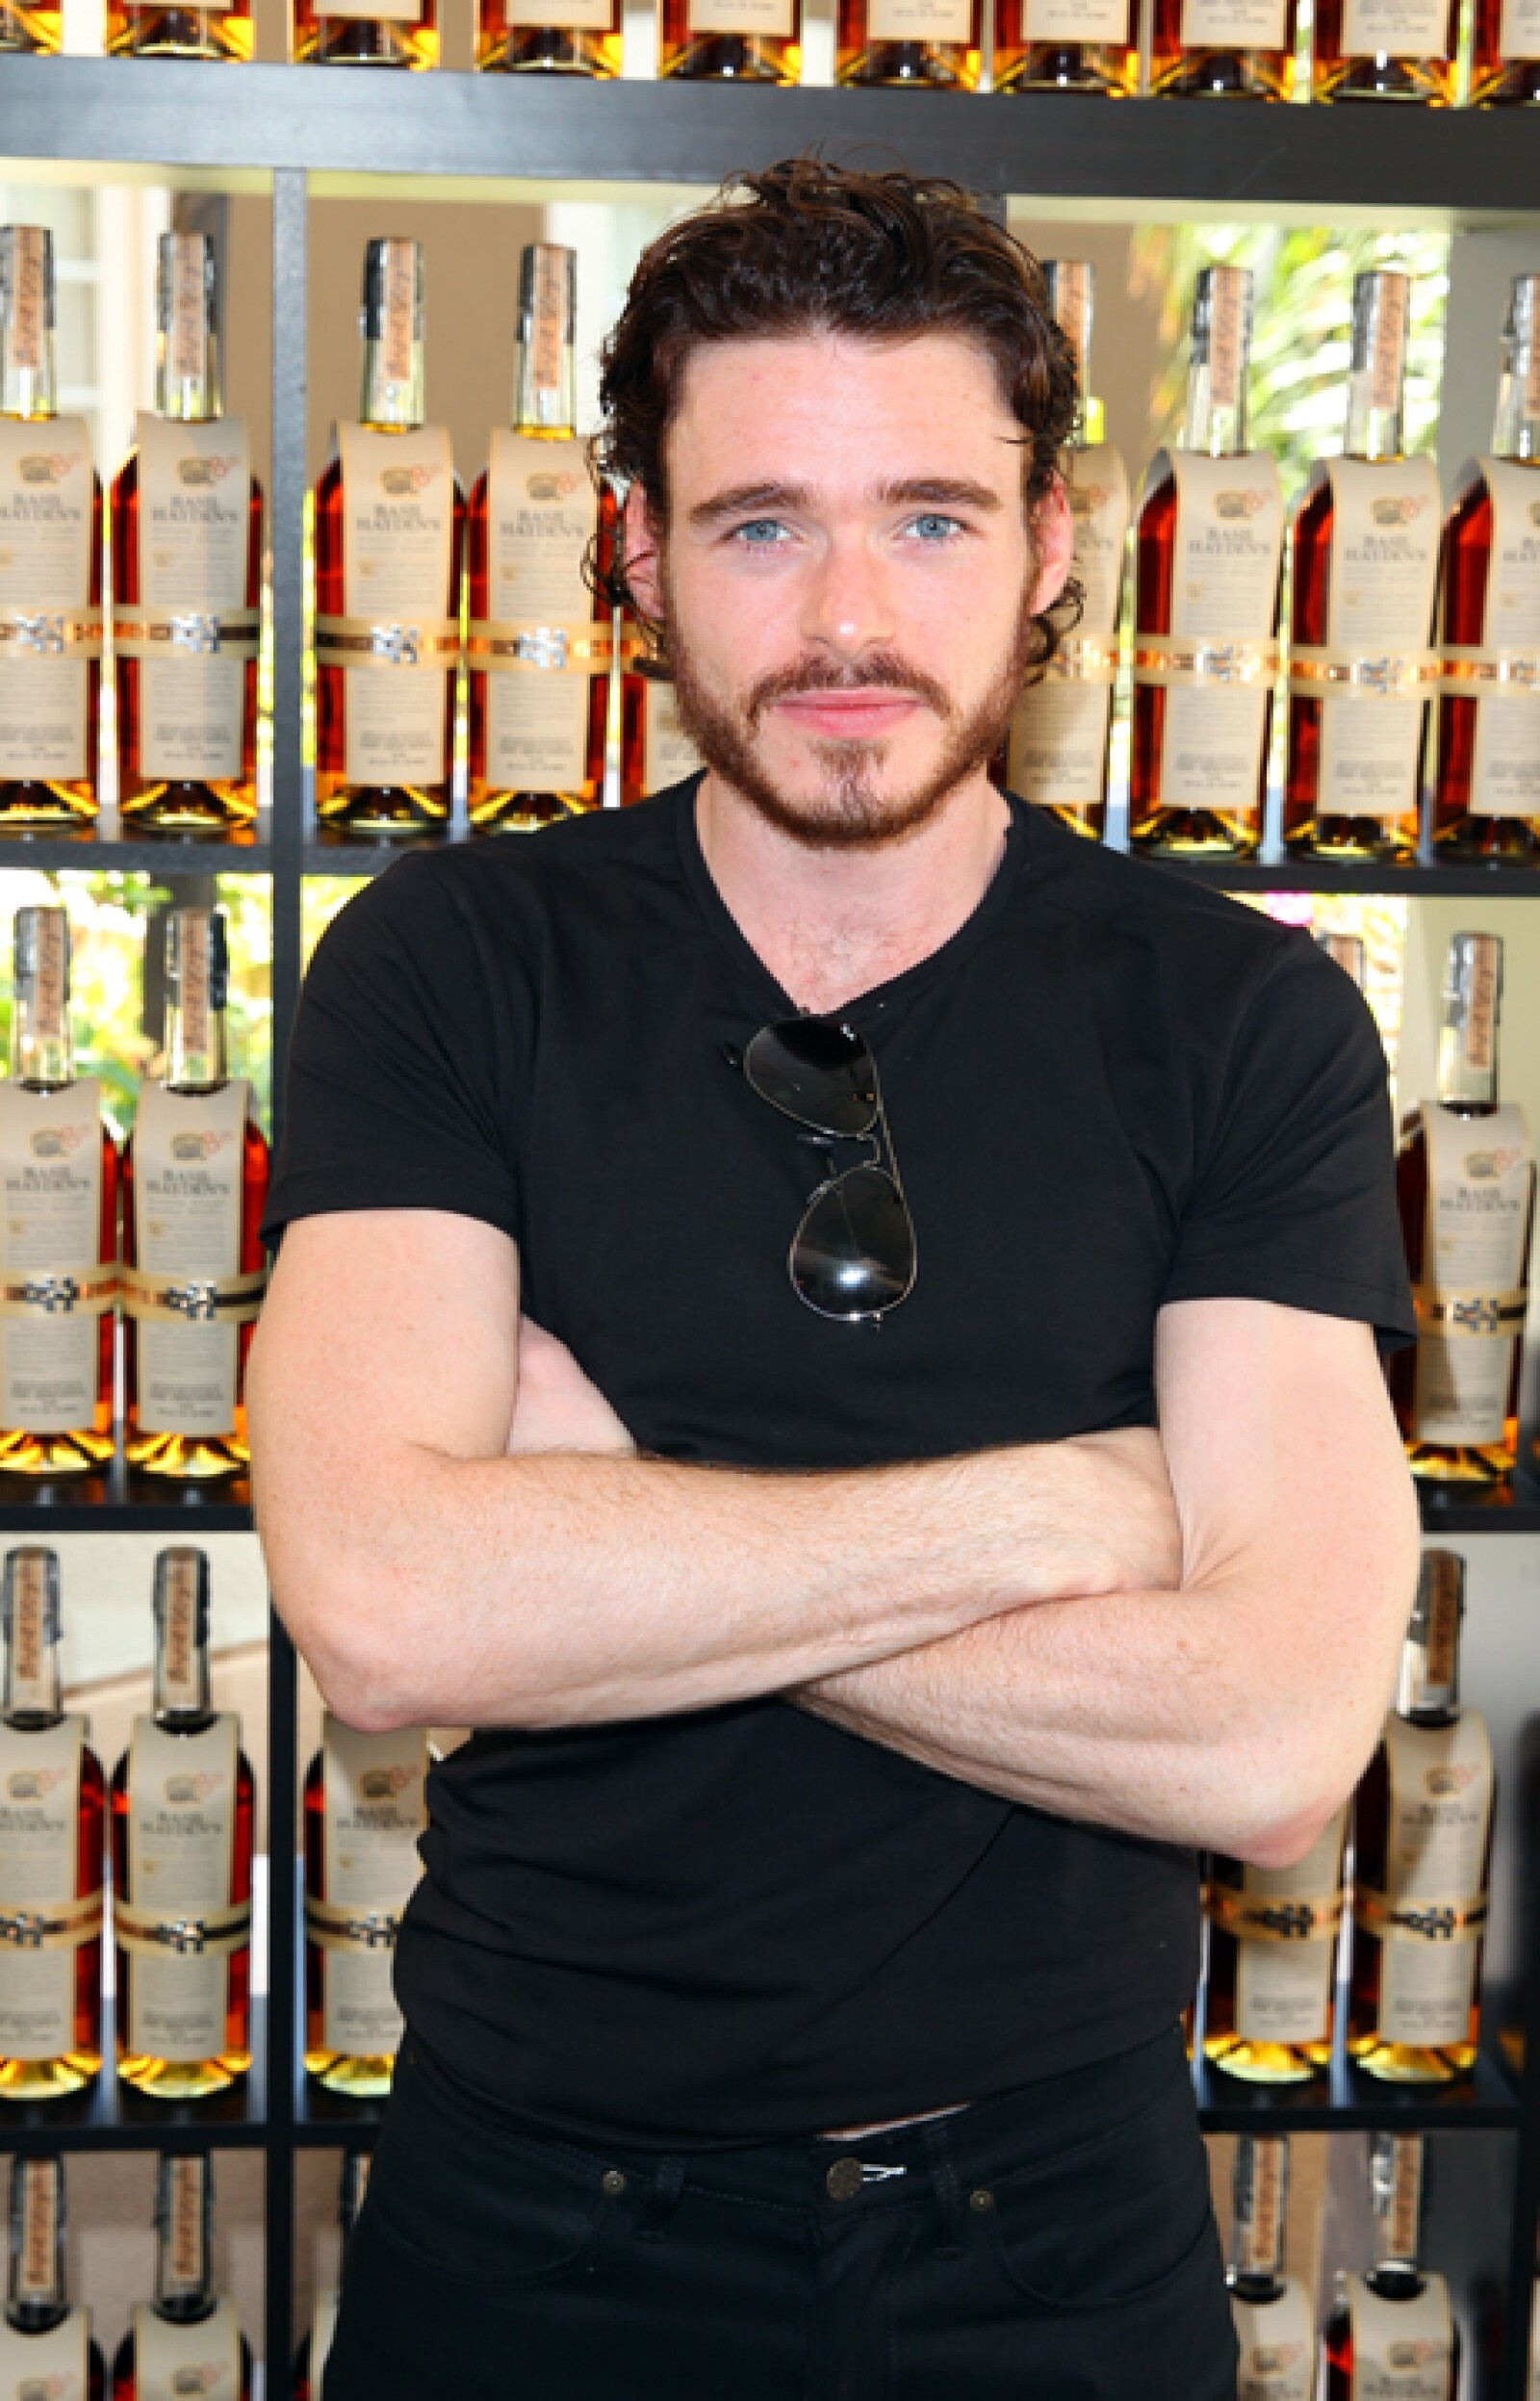 23. Richard Madden - Game of Thrones